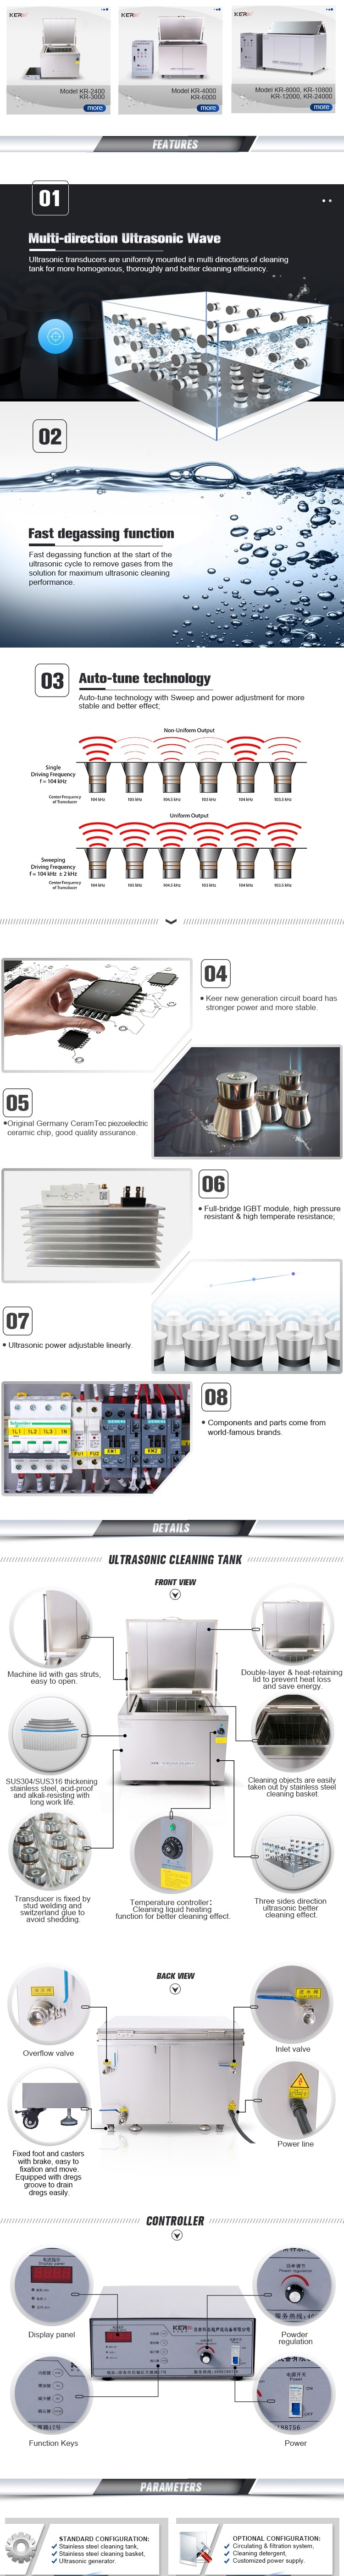 Best Selling Ultrasonic Degreasing Machine for Parts Cleaning Washing